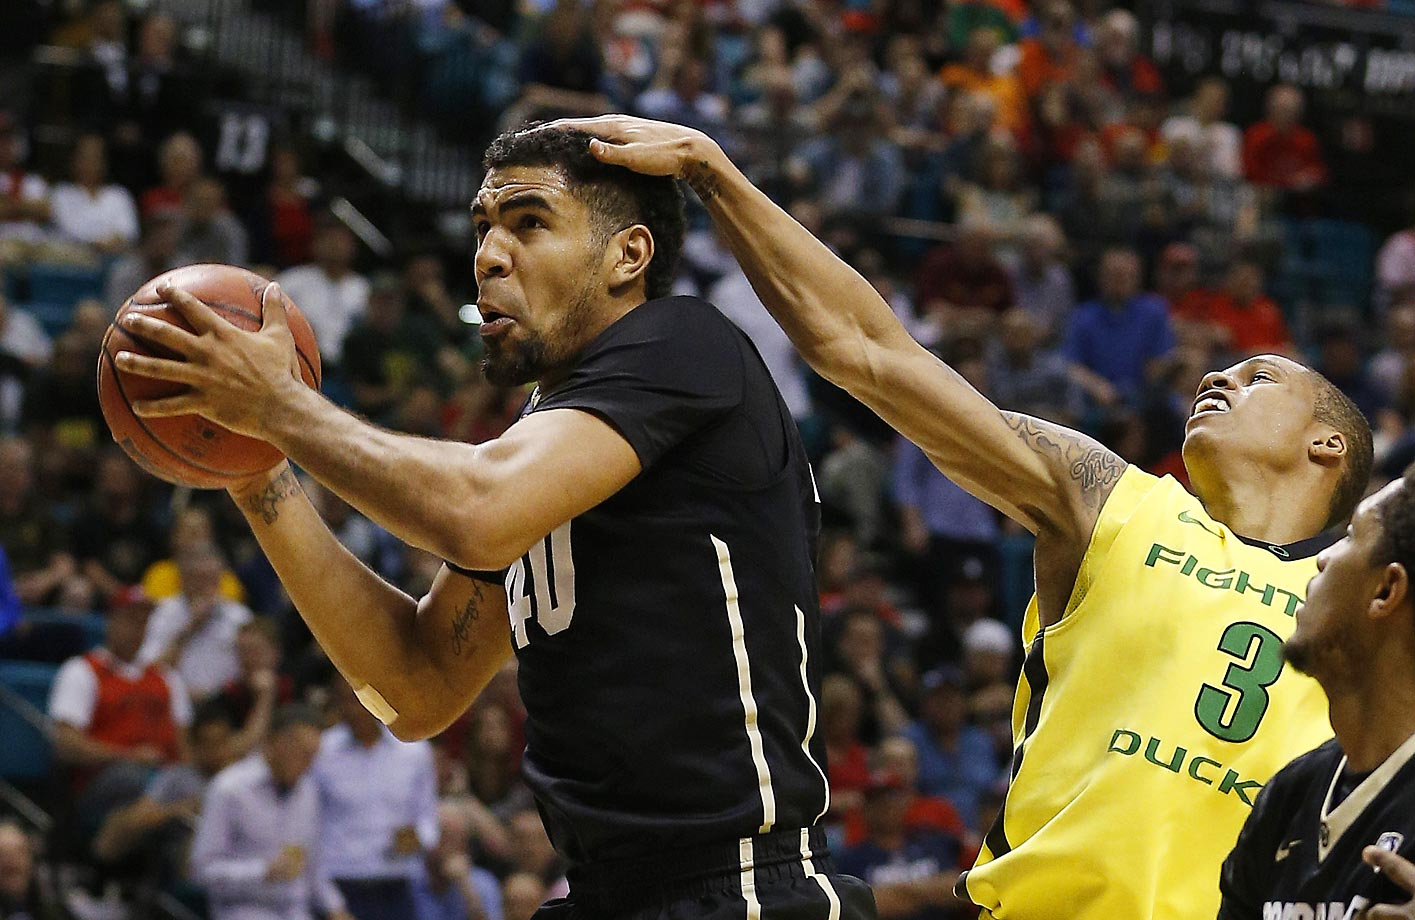 Josh Scott of Colorado gets a pat on the head by Joseph Young of Oregon.  Oregon won 93-85.